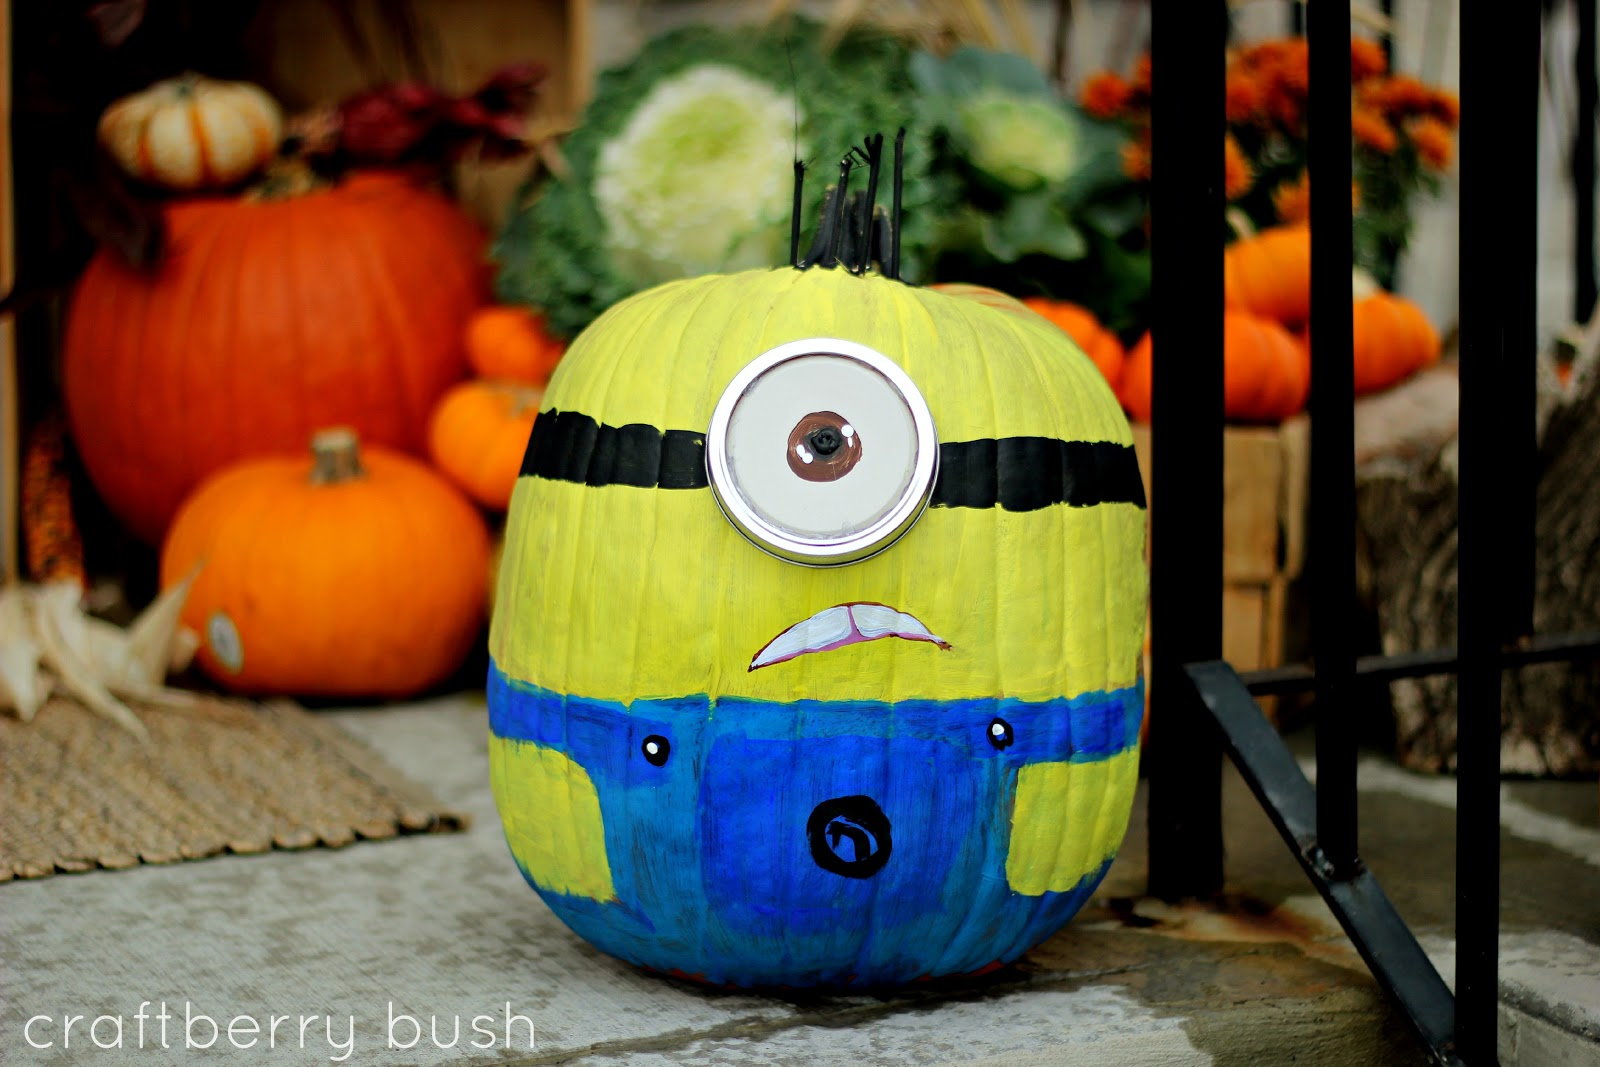 Craftberry bush creativity in bloom Funny pumpkin painting ideas